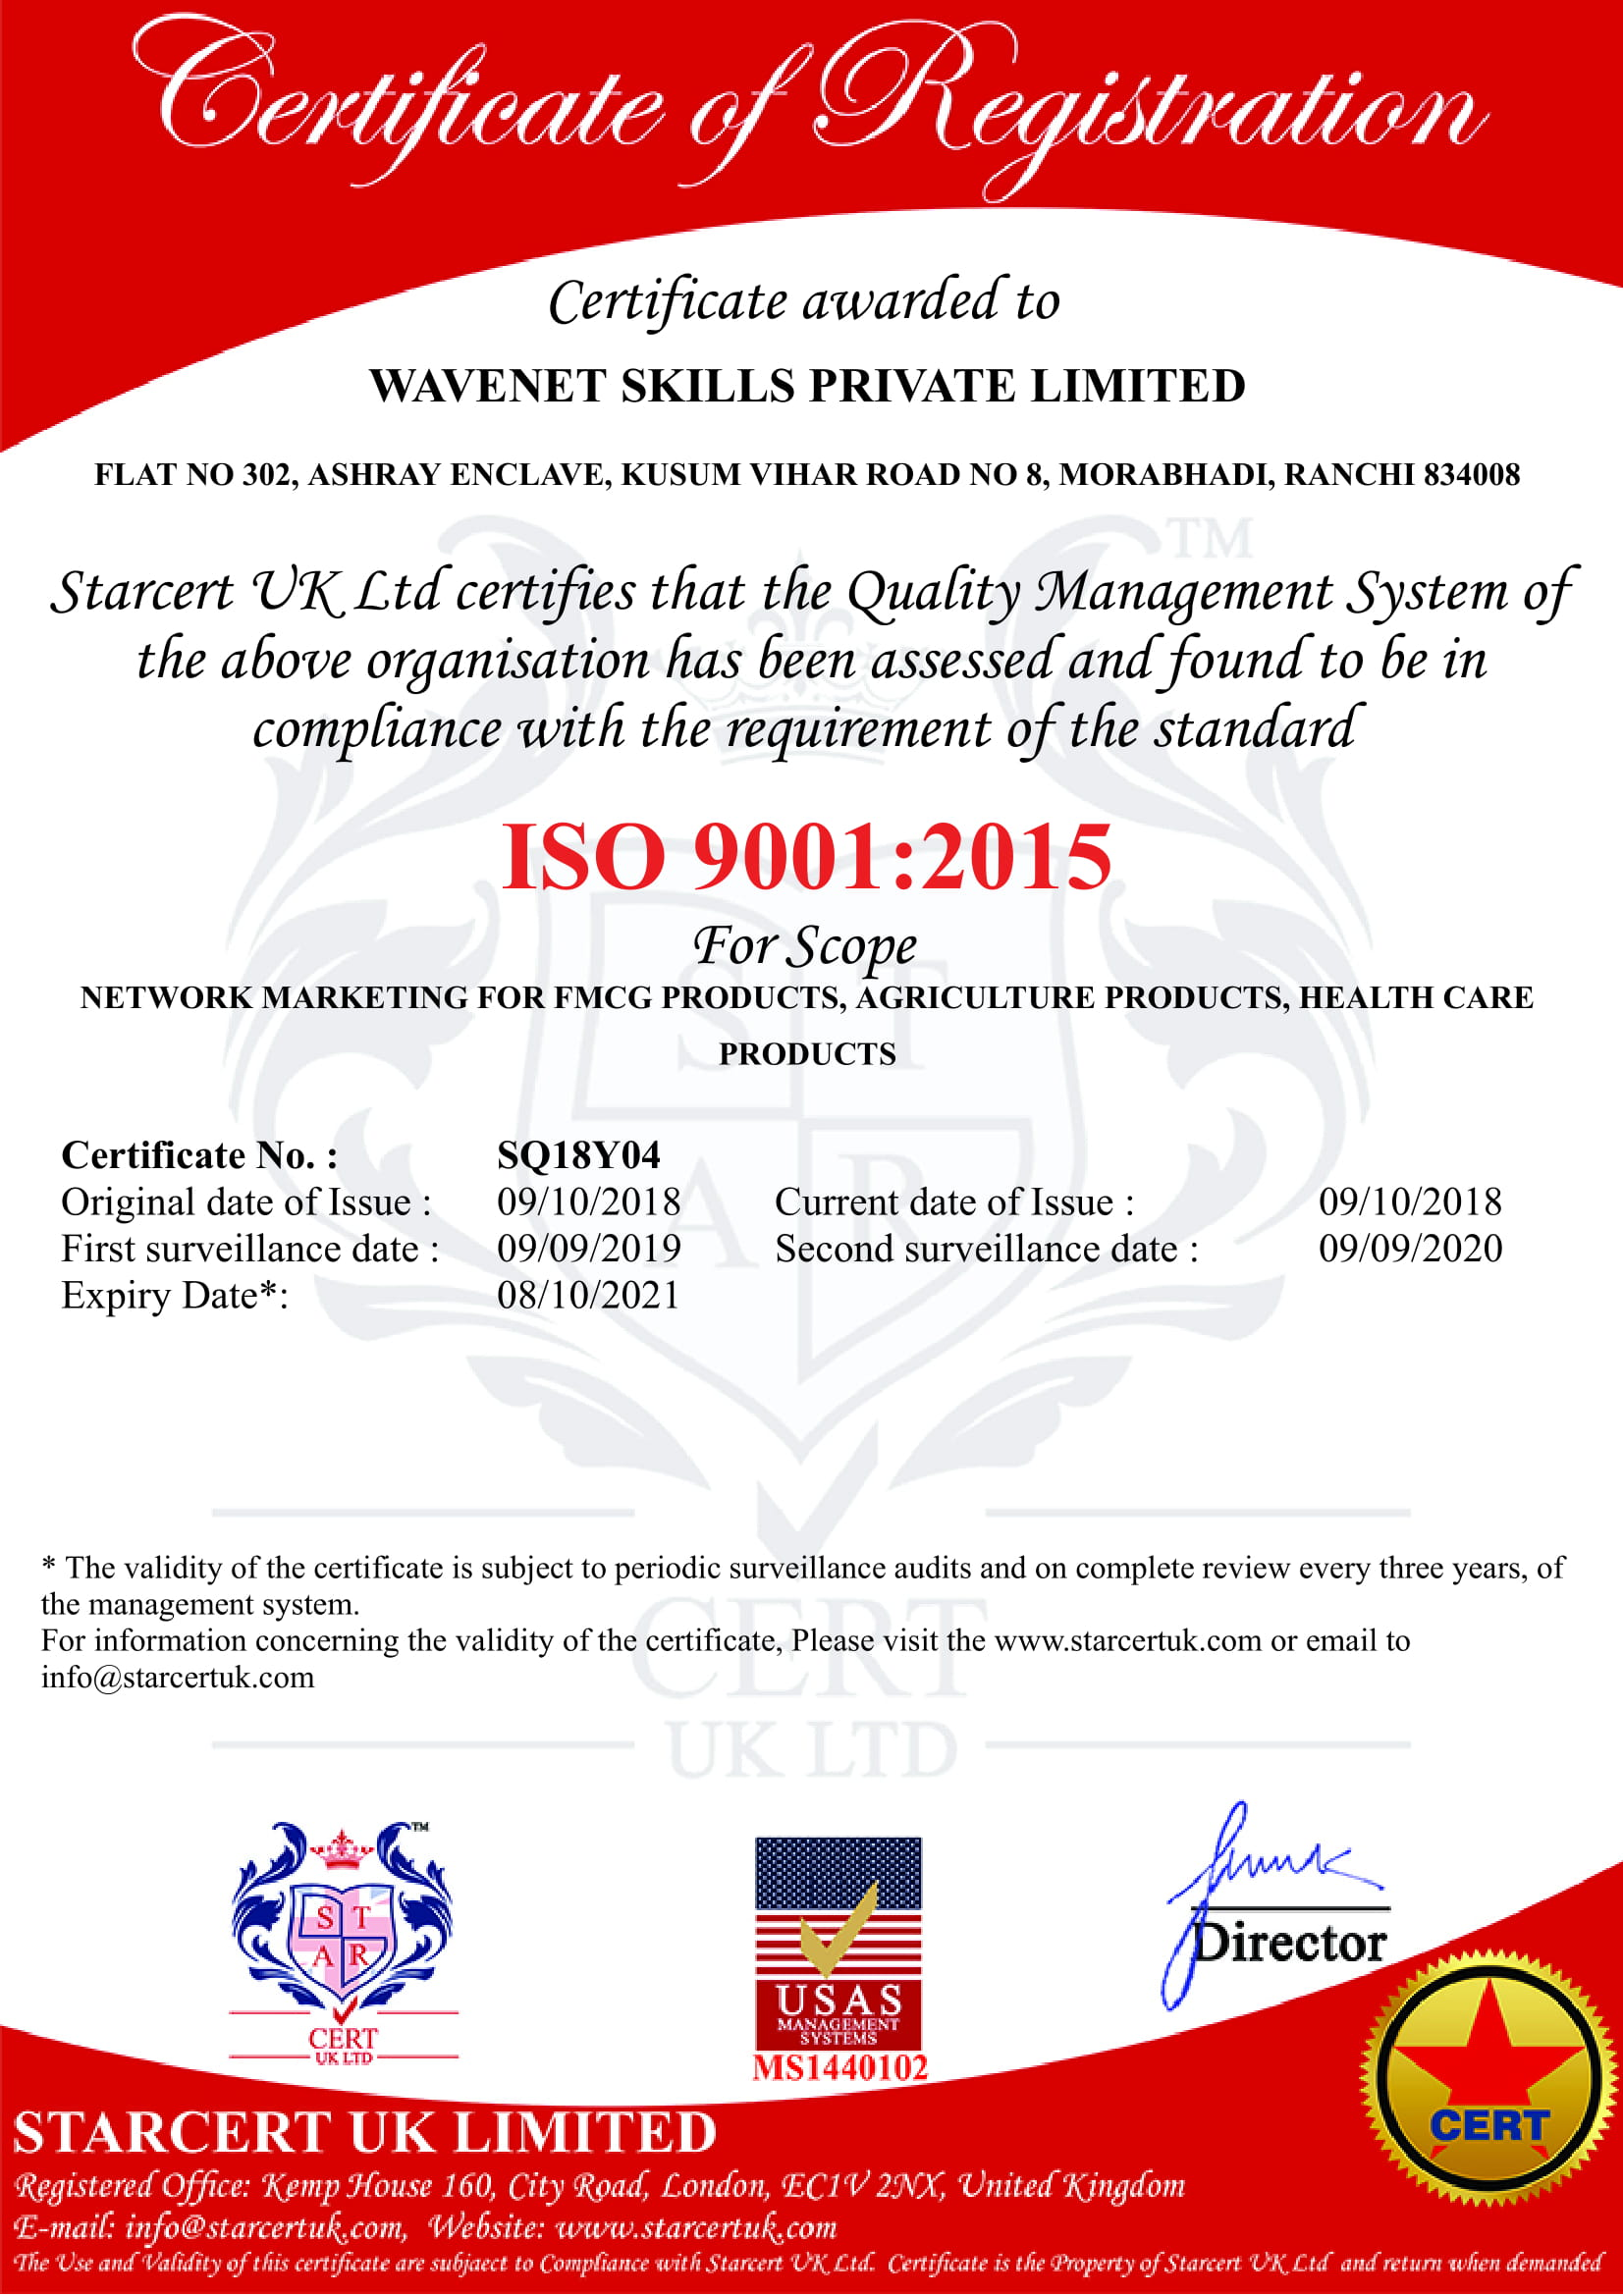 Registration certificate IMG